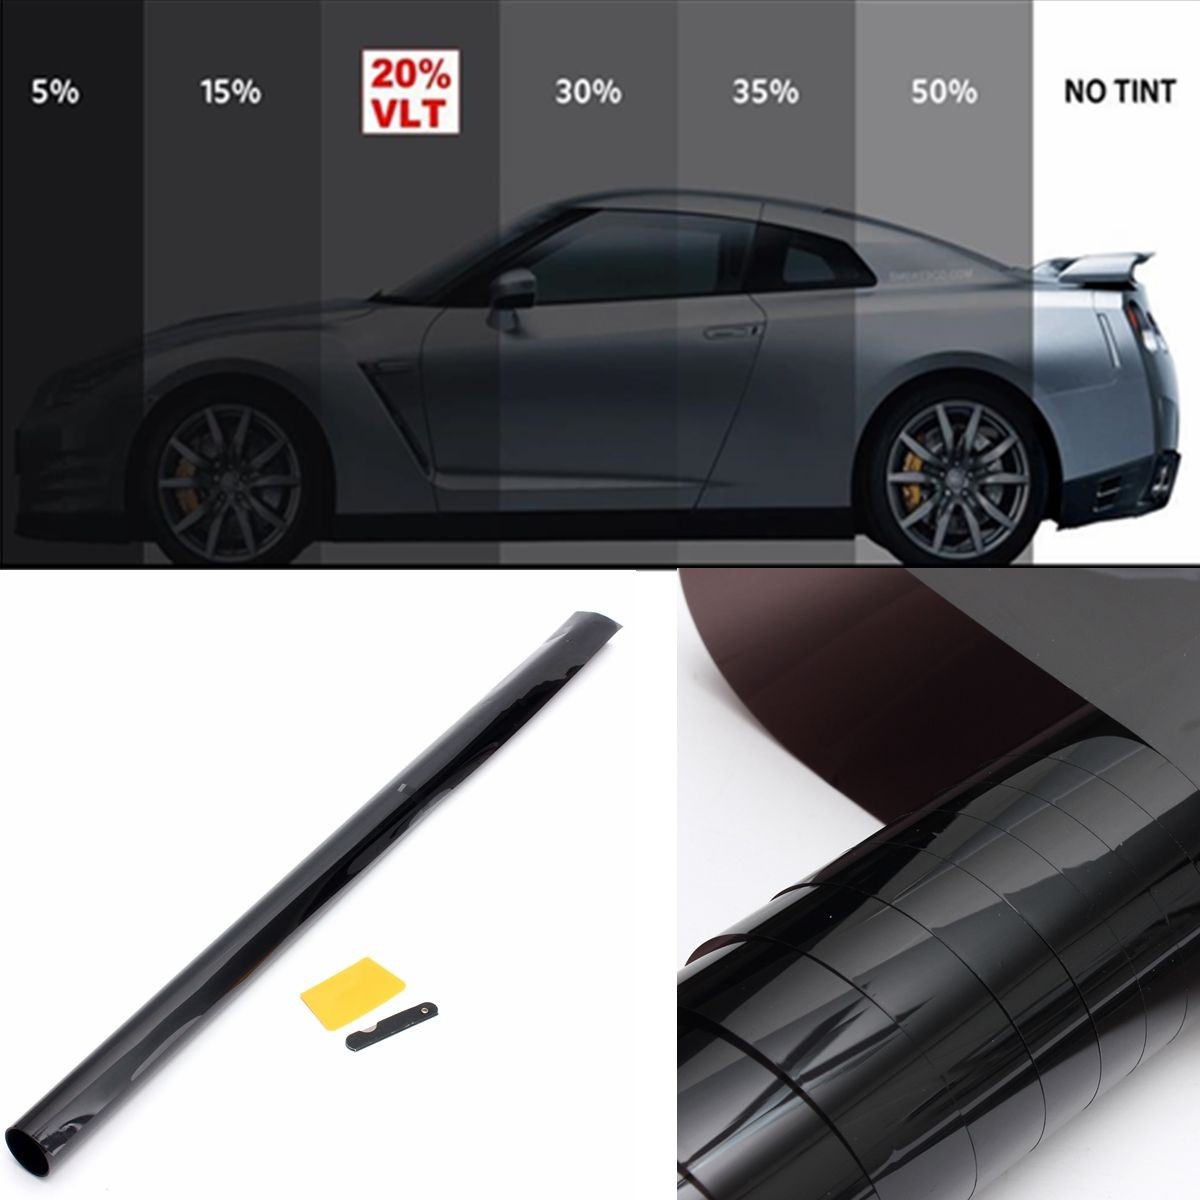 rc cars free shipping with 292168665292 on ExtremeMachinesDodgeRamTriBand118RTRRCTruck besides Nissan Skyline Gtr35 1 14 Scale Rc Drift Car Free 4pcs Dfirt Tire Myshop8 I1047741B 2007 01 Sale I besides Wltoys A949 A959 A969 A969 Rc Car Spare Parts Motor Gear as well Heng Long 3818 And All Rc Tank 116 2 4ghz New Radio Control Universal Upgrade Kit 2 4 Transmitter2 4g Receiver 2 4g Line together with Nikko Rc Vaporizr 2 Blue.